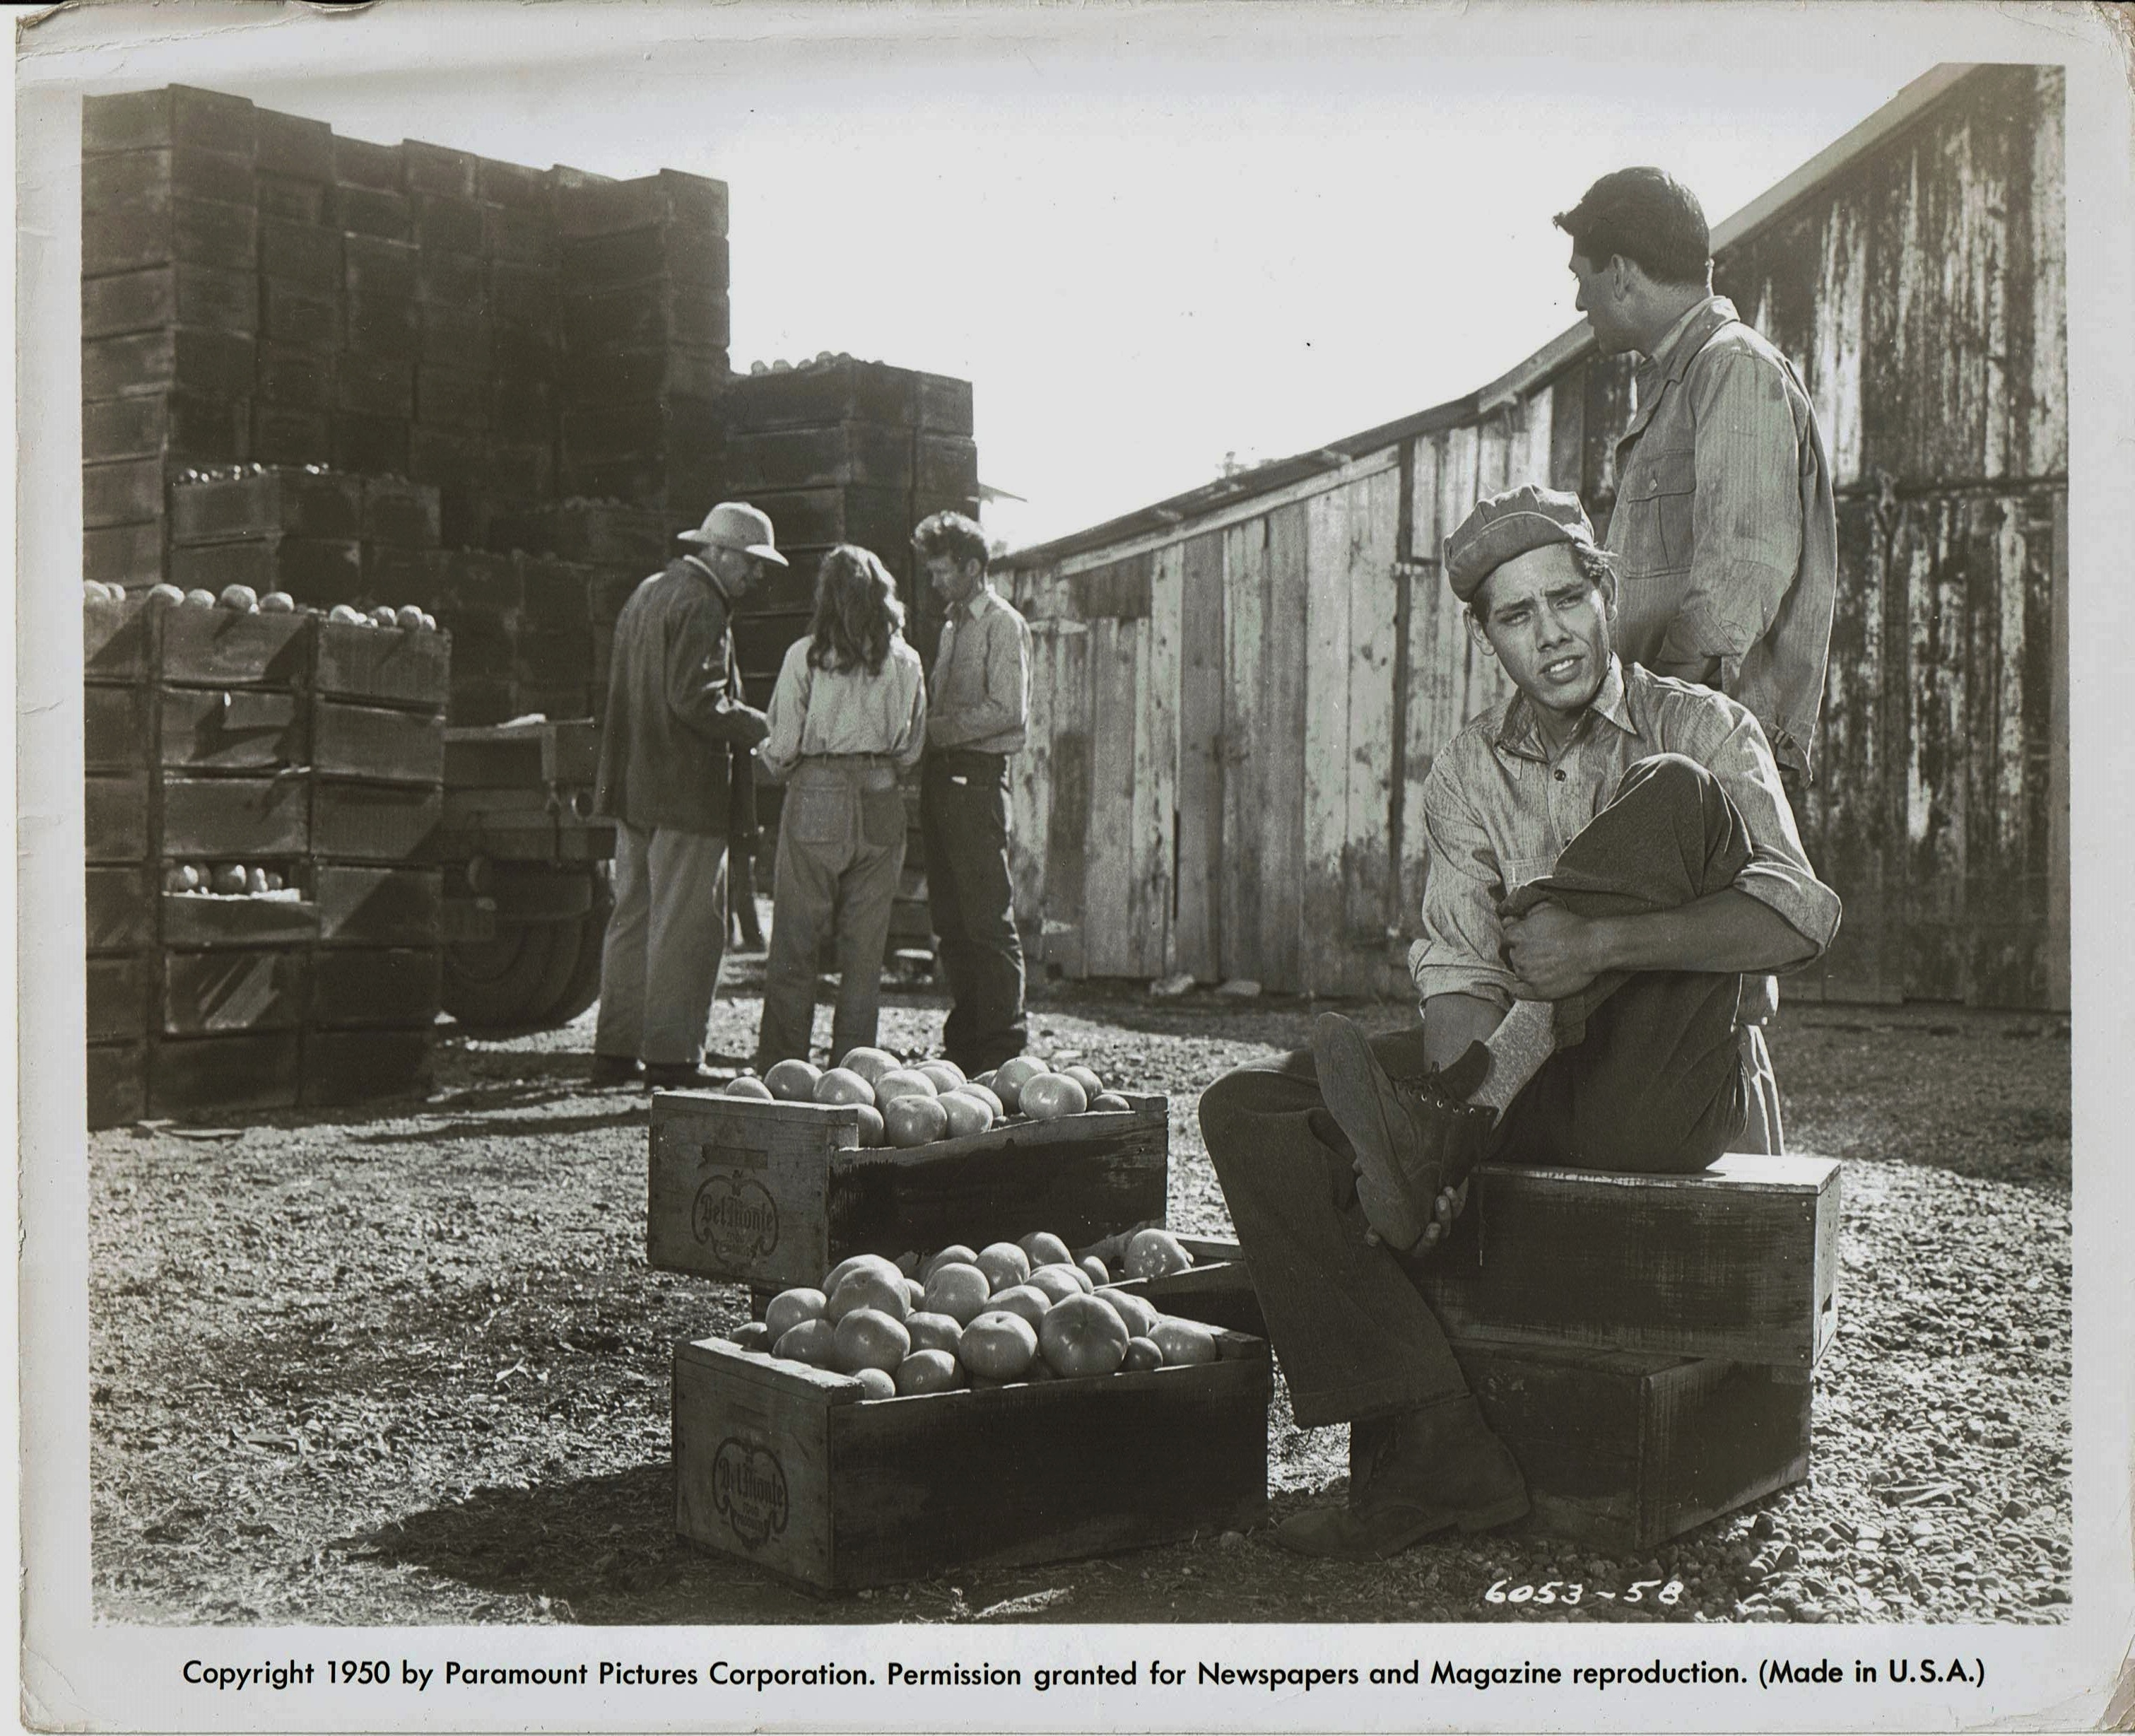 Maurice Jara and Lalo Rios in The Lawless (1950)